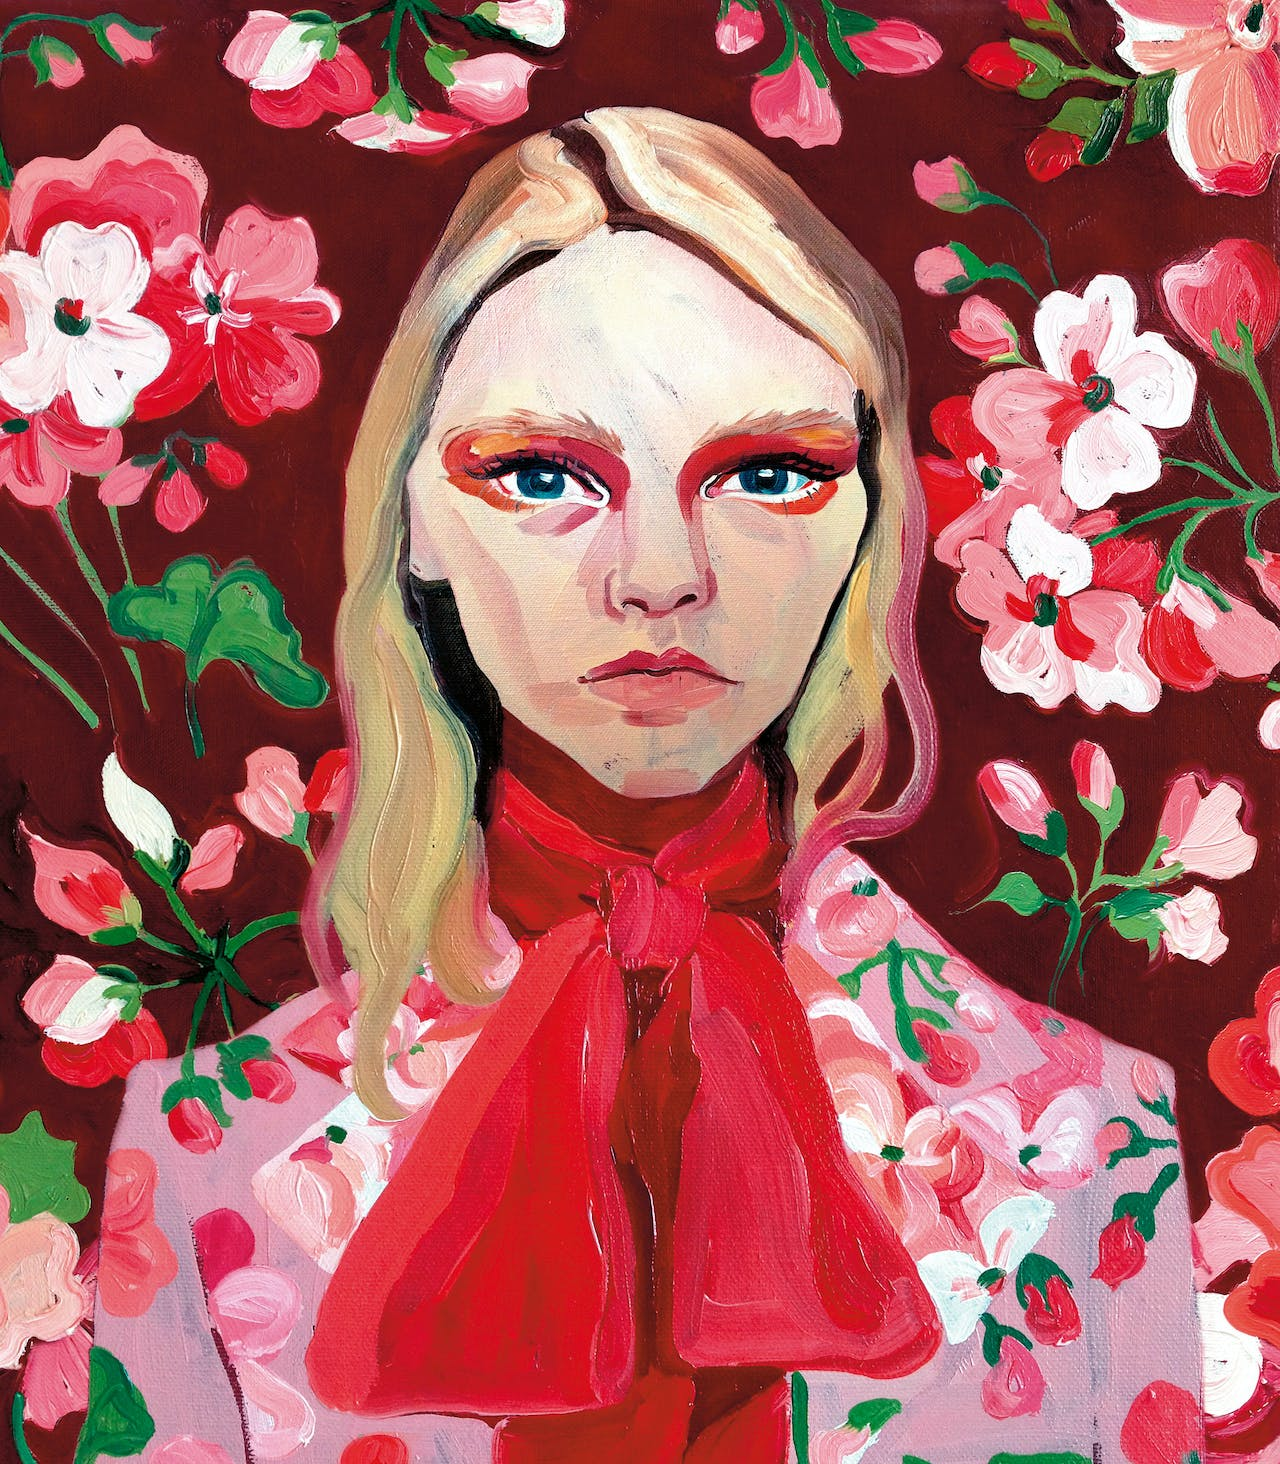 'Gucci Blooms' 2015